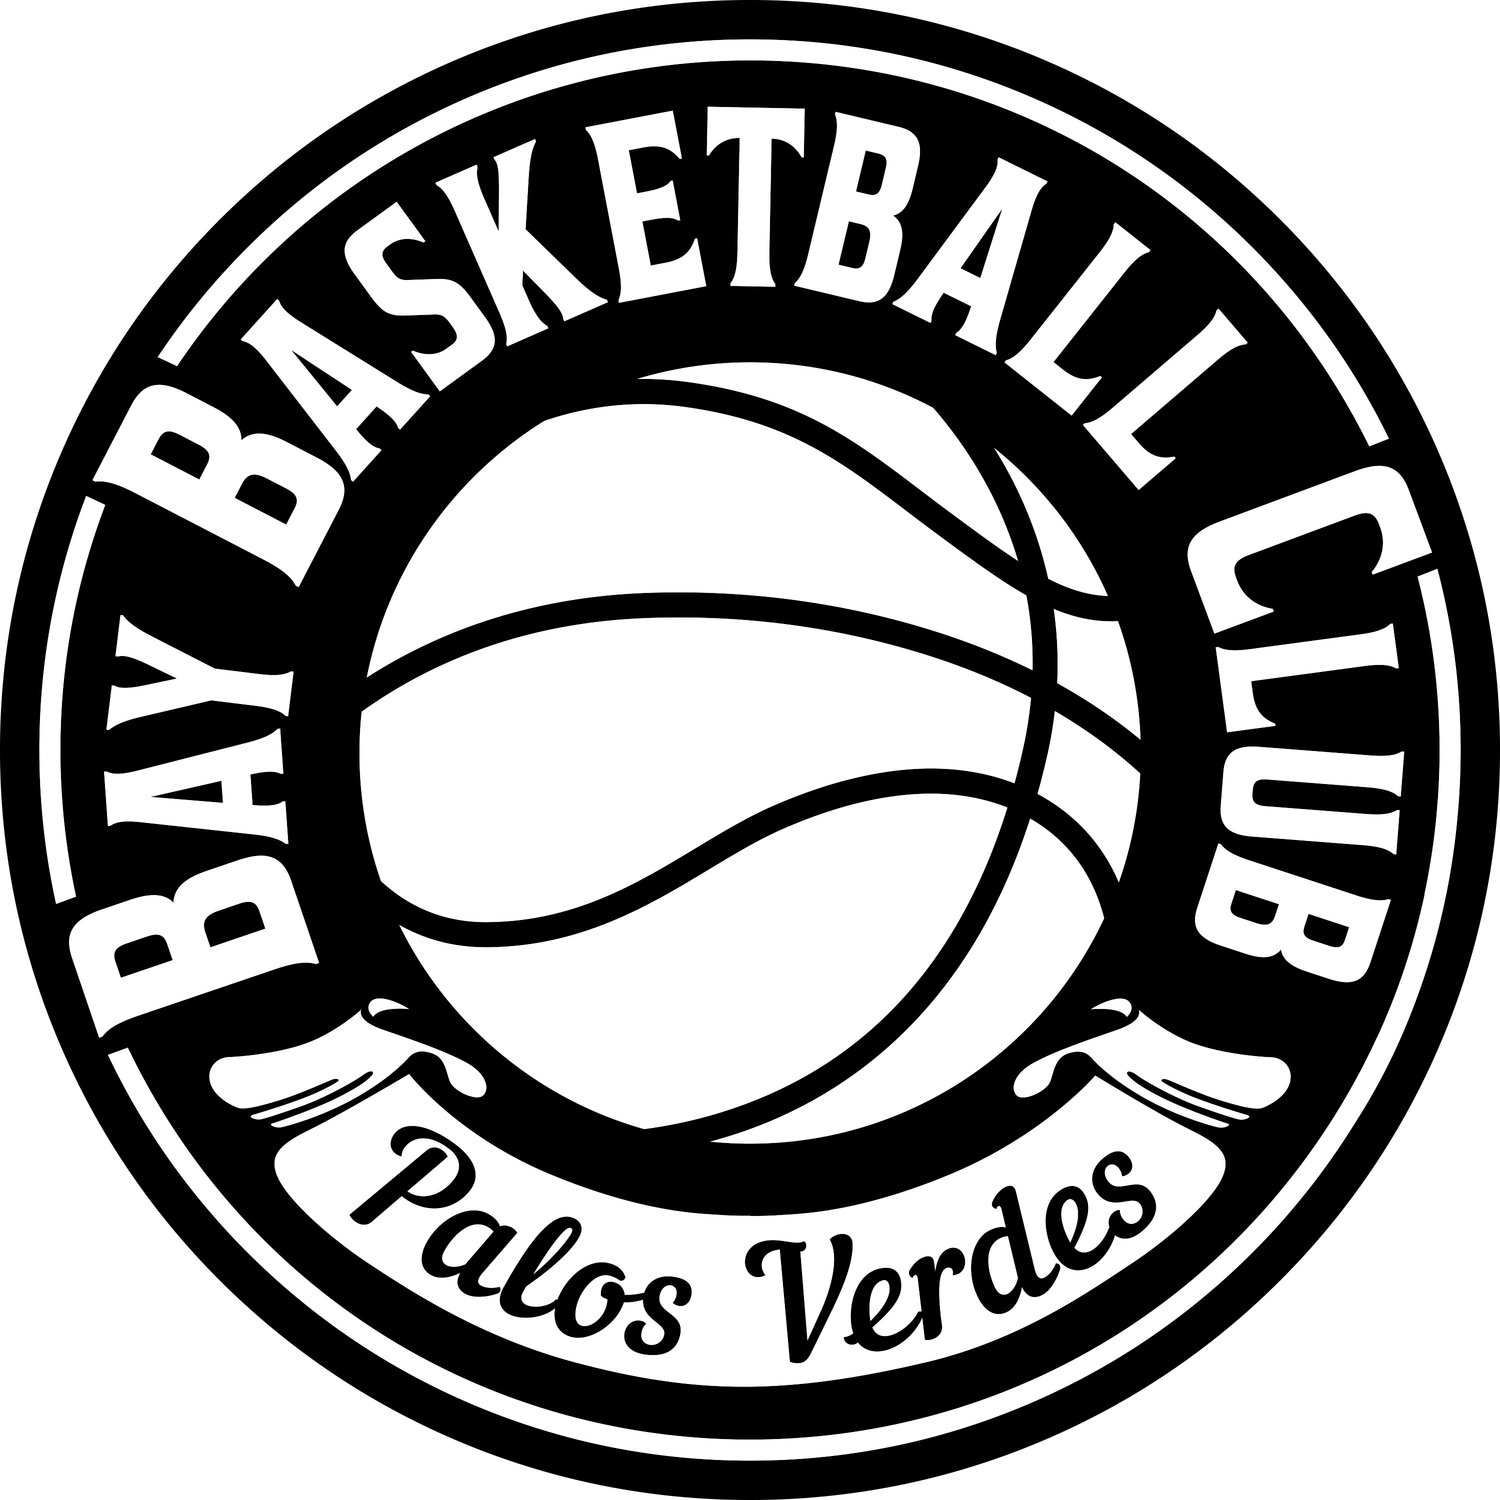 BAY BASKETBALL CLUB, YOUTH BASKETBALL, PALOS VERDES, CA